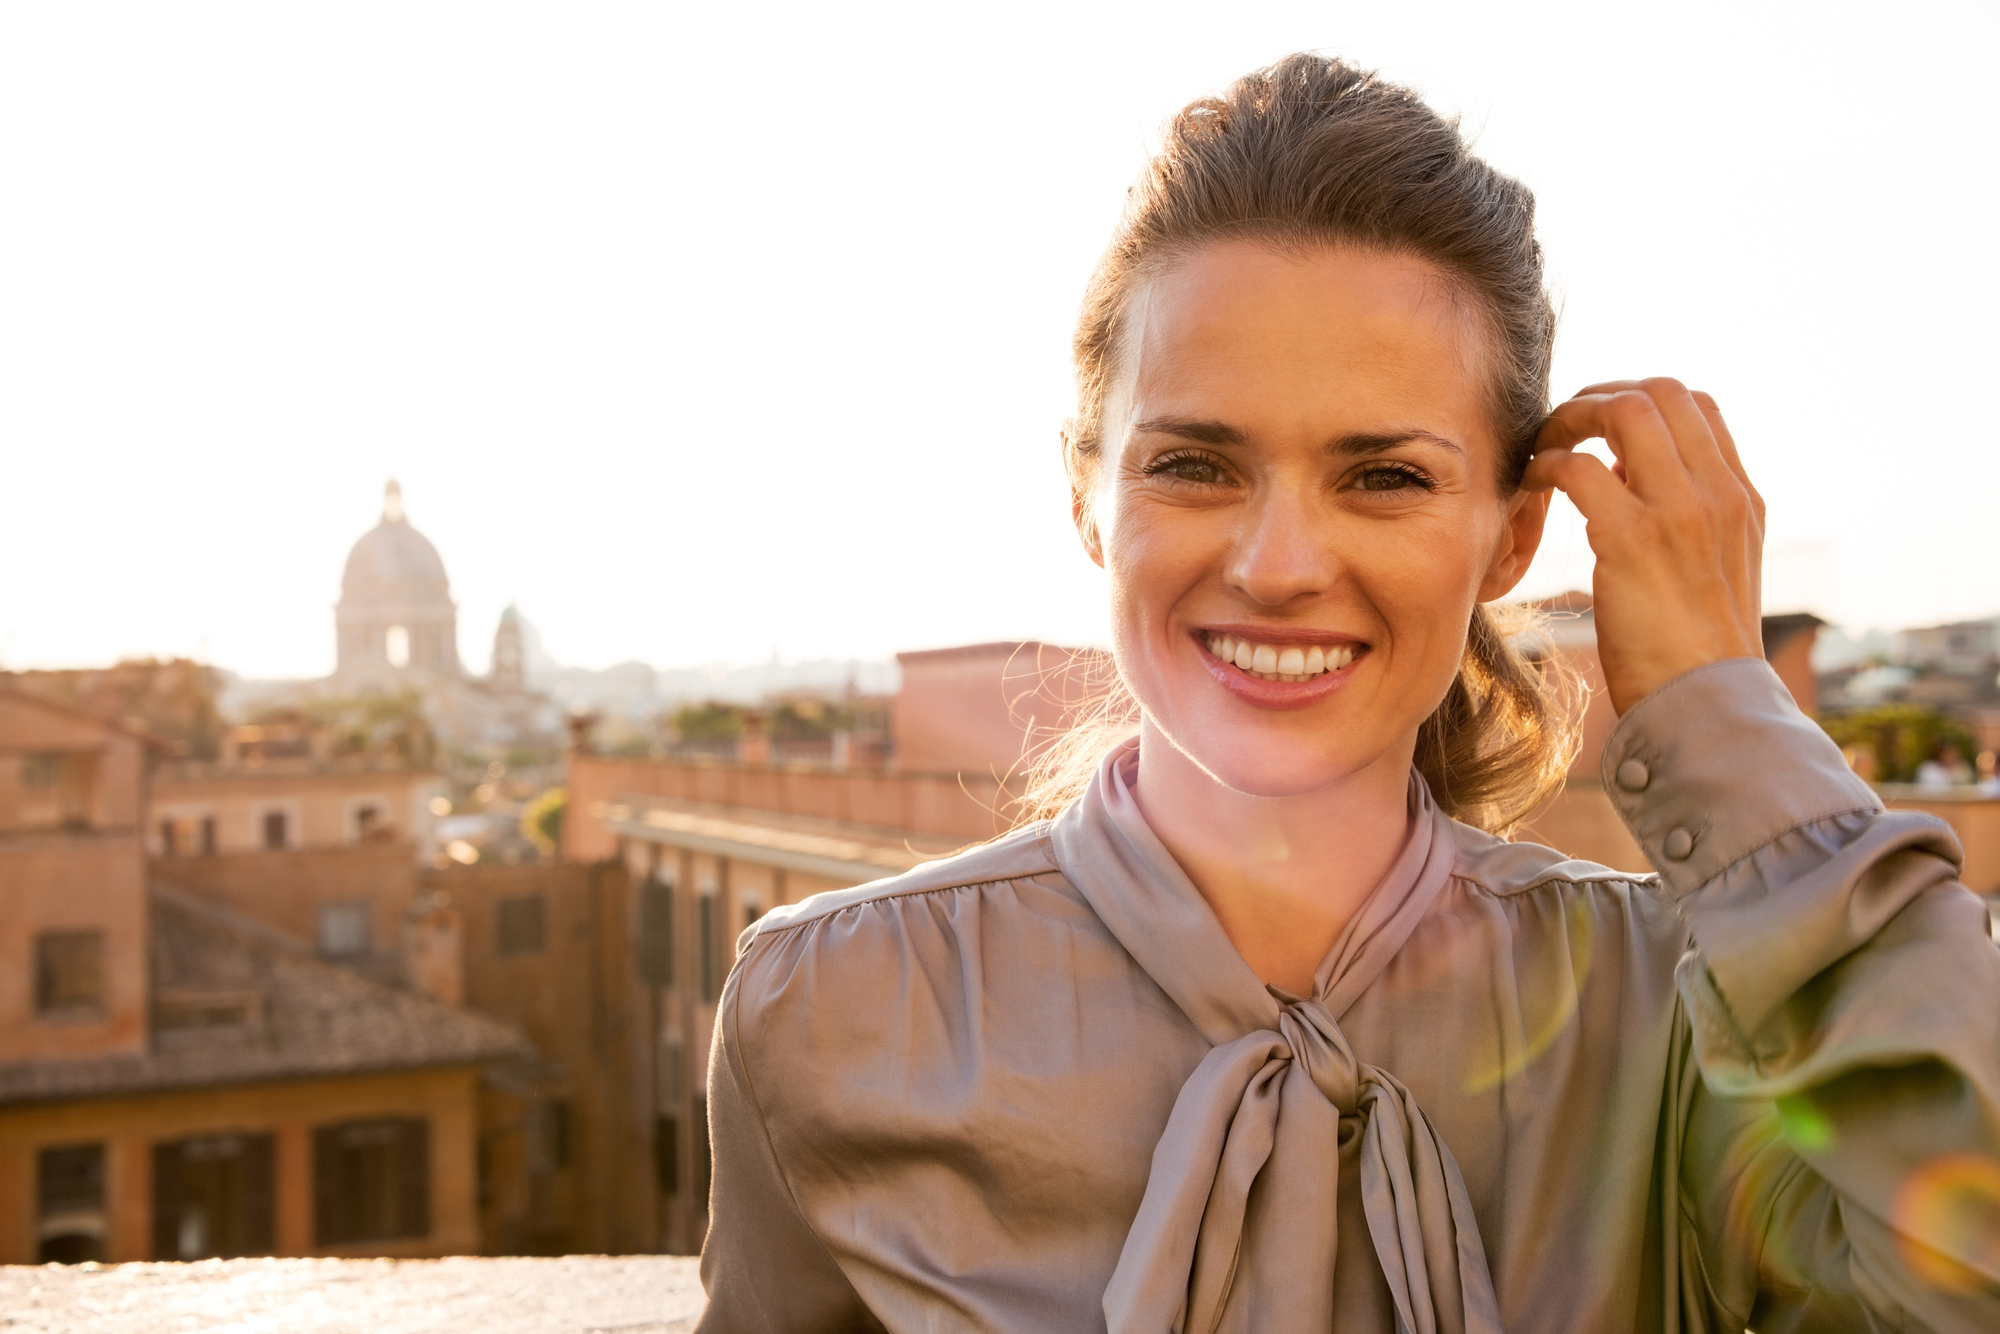 Portrait of happy young woman standing on street overlooking rooftops of rome on sunset